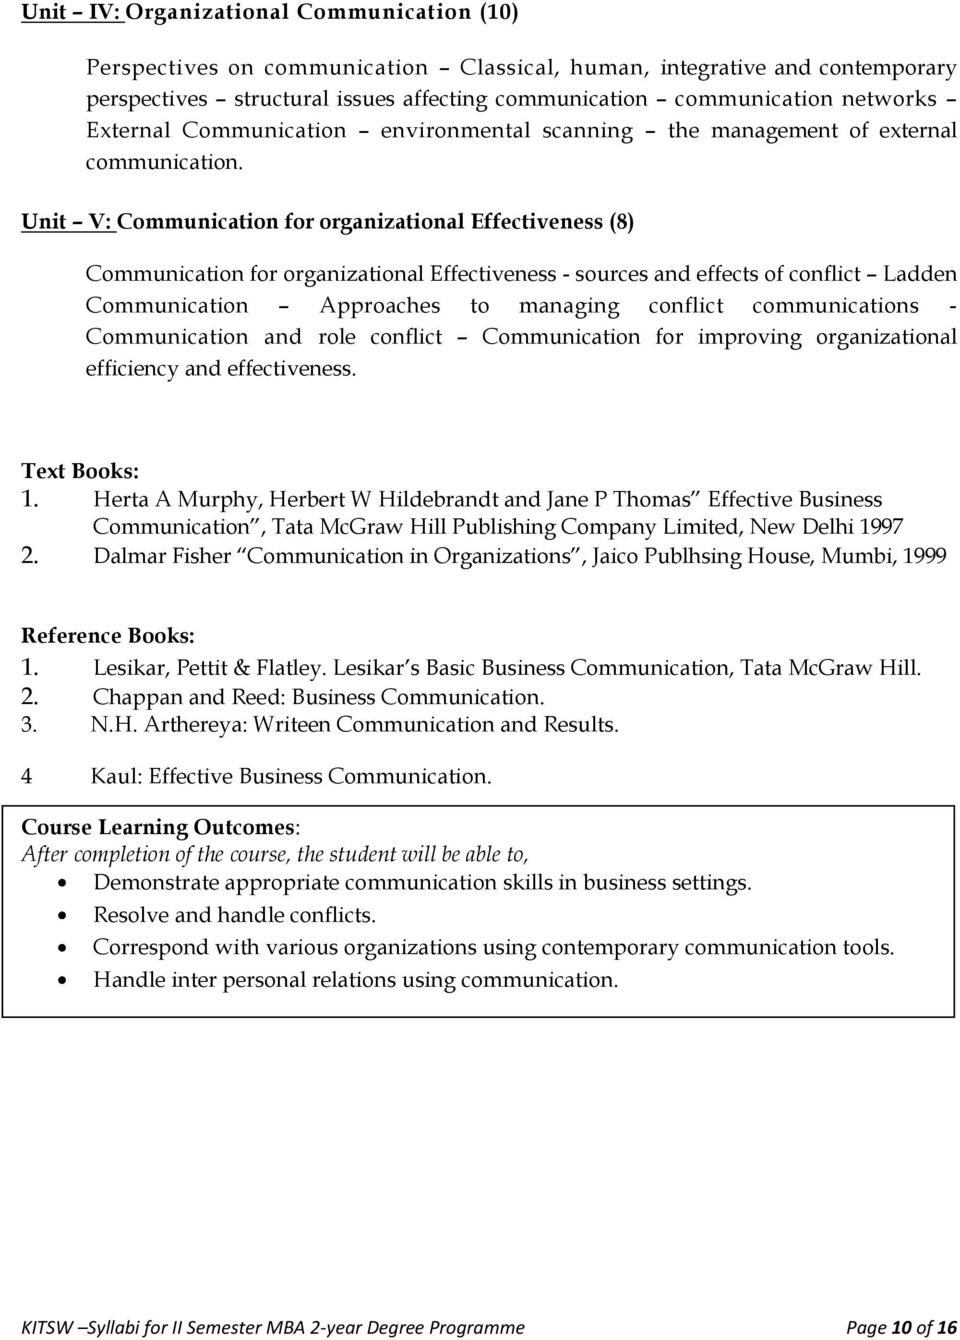 Unit V: Communication for organizational Effectiveness (8) Communication for organizational Effectiveness - sources and effects of conflict Ladden Communication Approaches to managing conflict